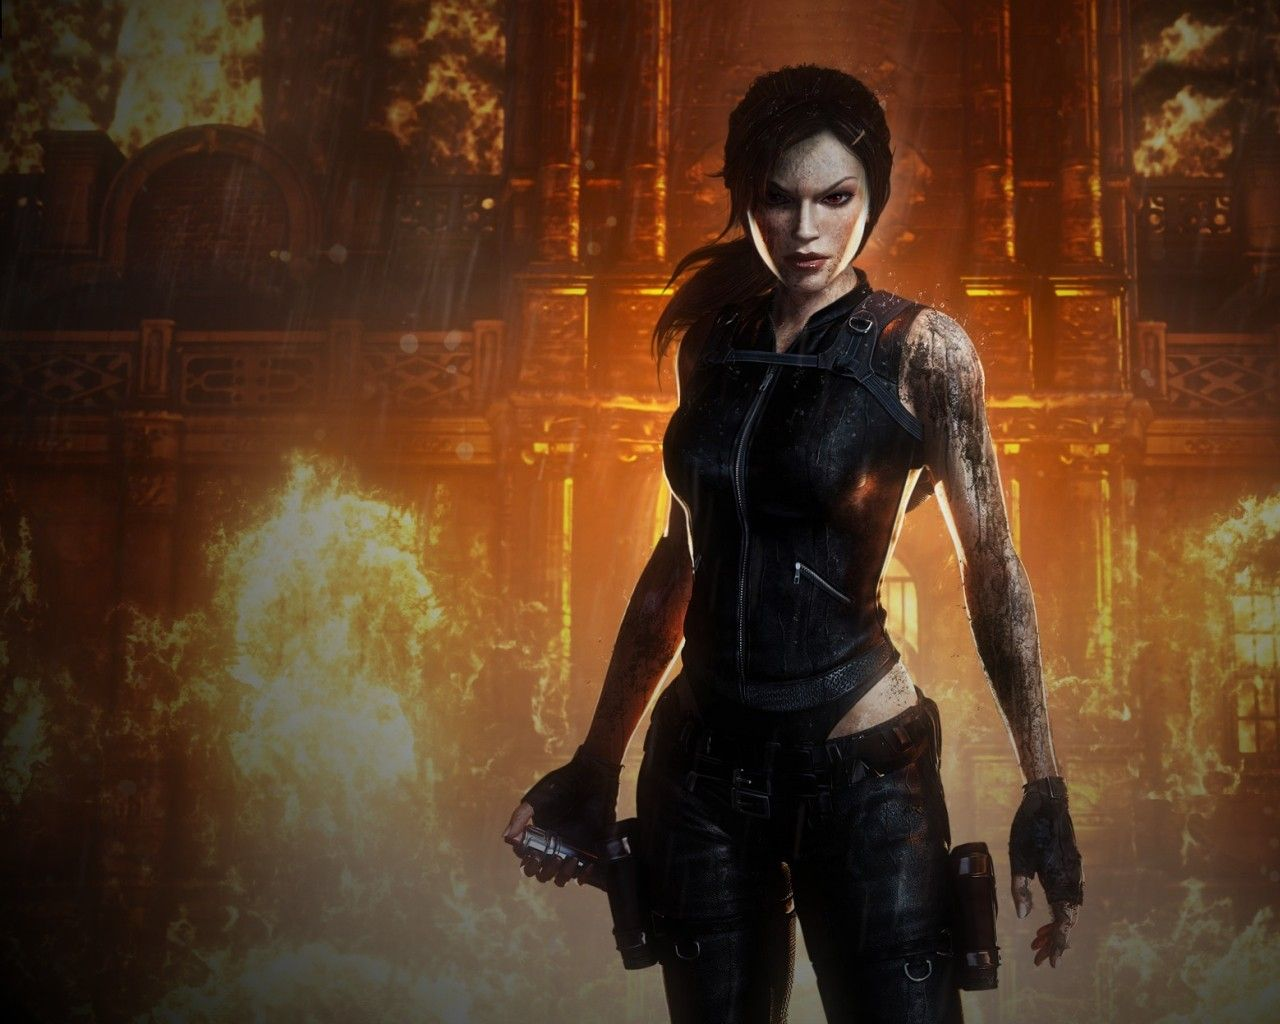 Lara Croft Lara Croft Wallpaper9 Hd Wallpapers Fan Full Hd